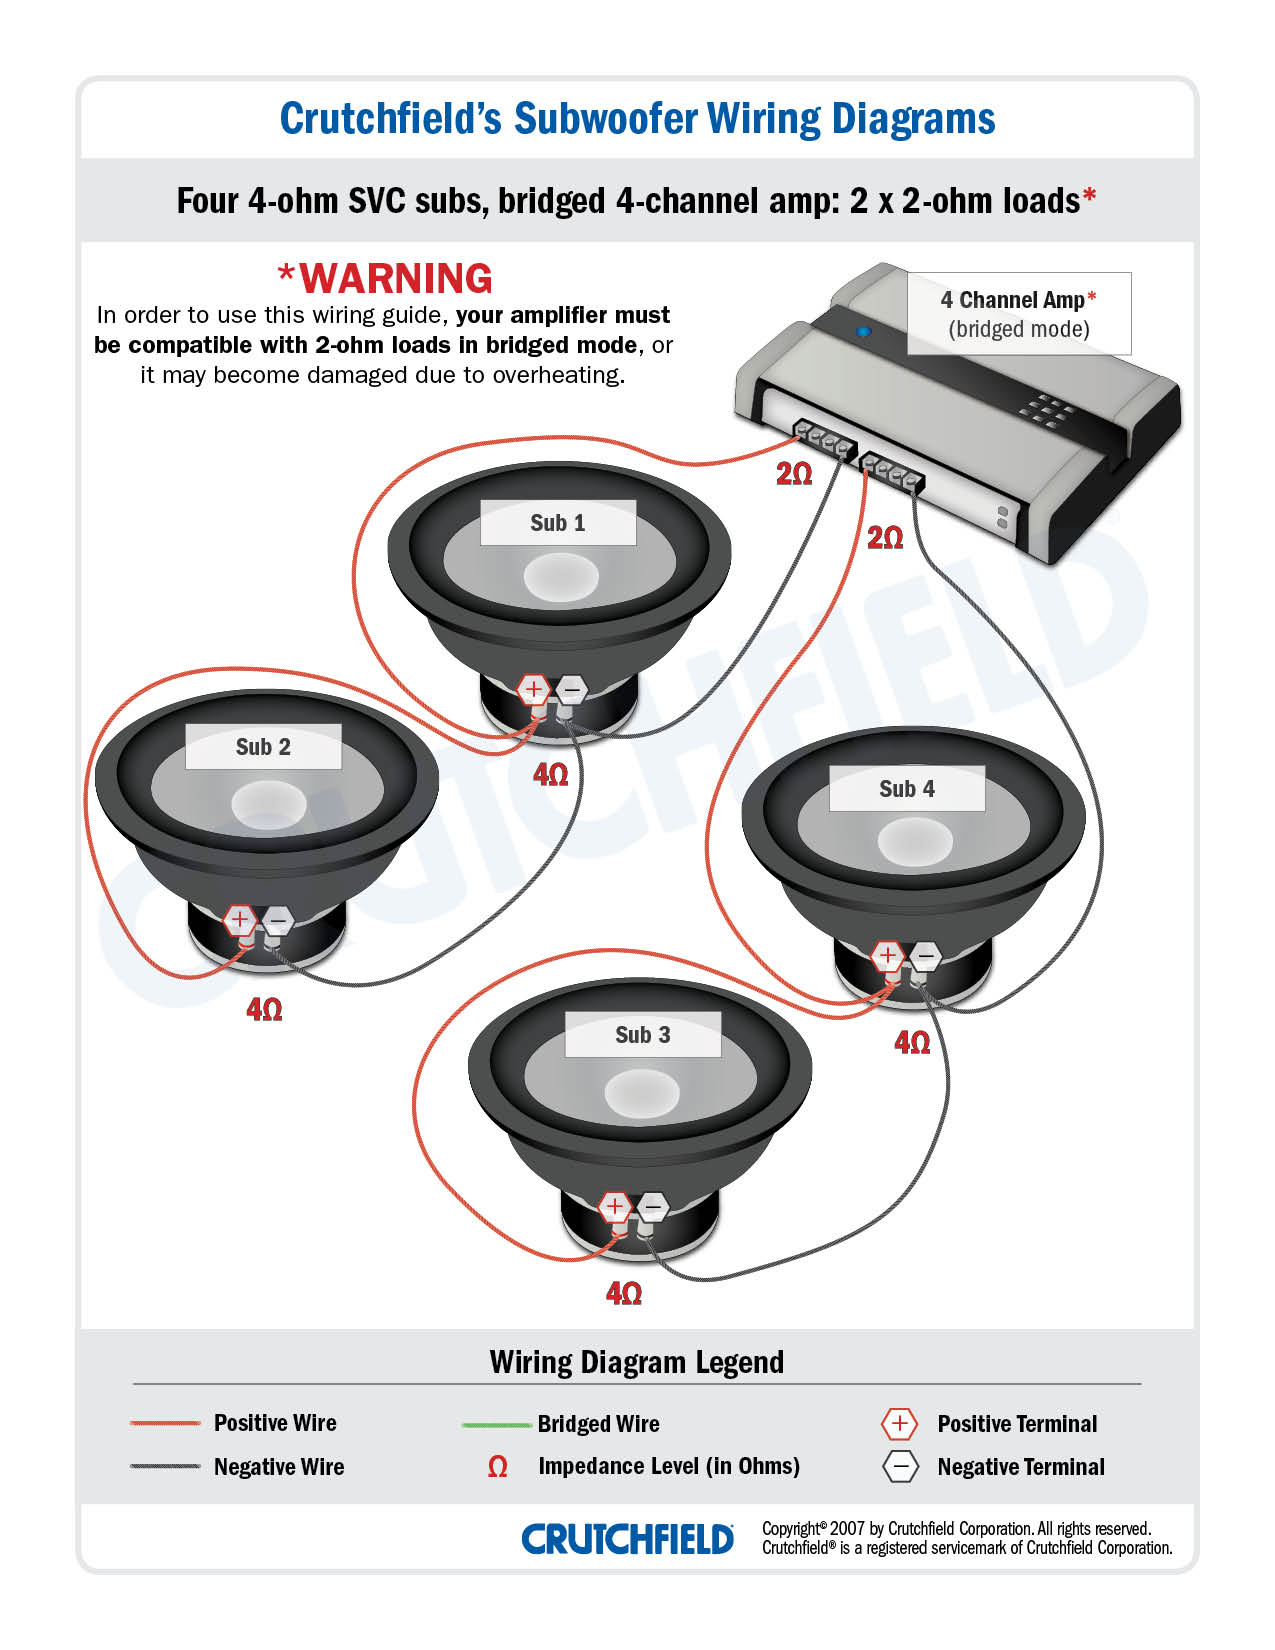 4 SVC 4 ohm 4 ch low imp subwoofer wiring diagrams car stereo amp wiring diagram at eliteediting.co